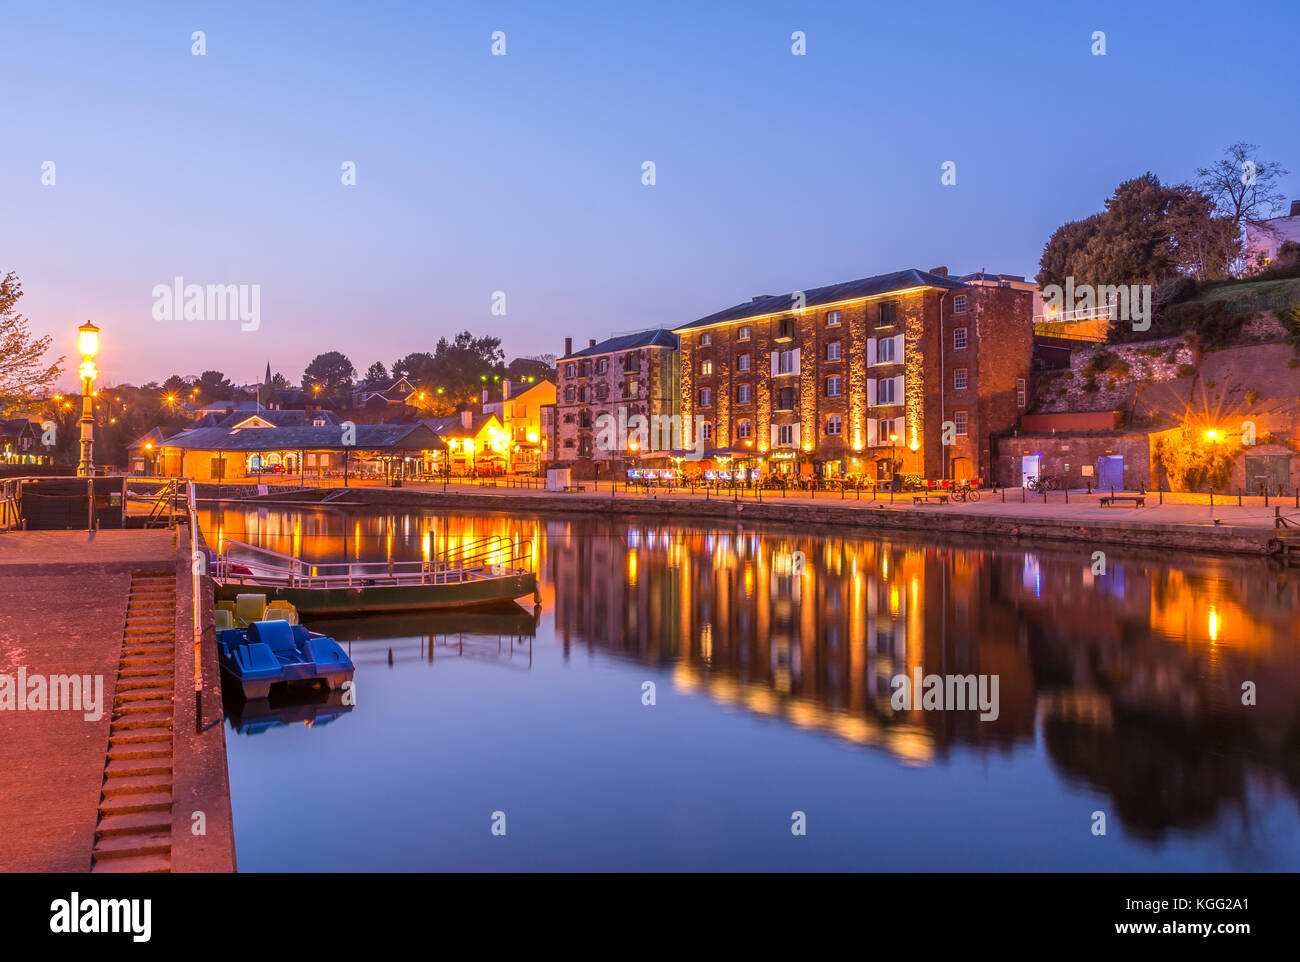 Exeter Quay at Night. - Stock Image